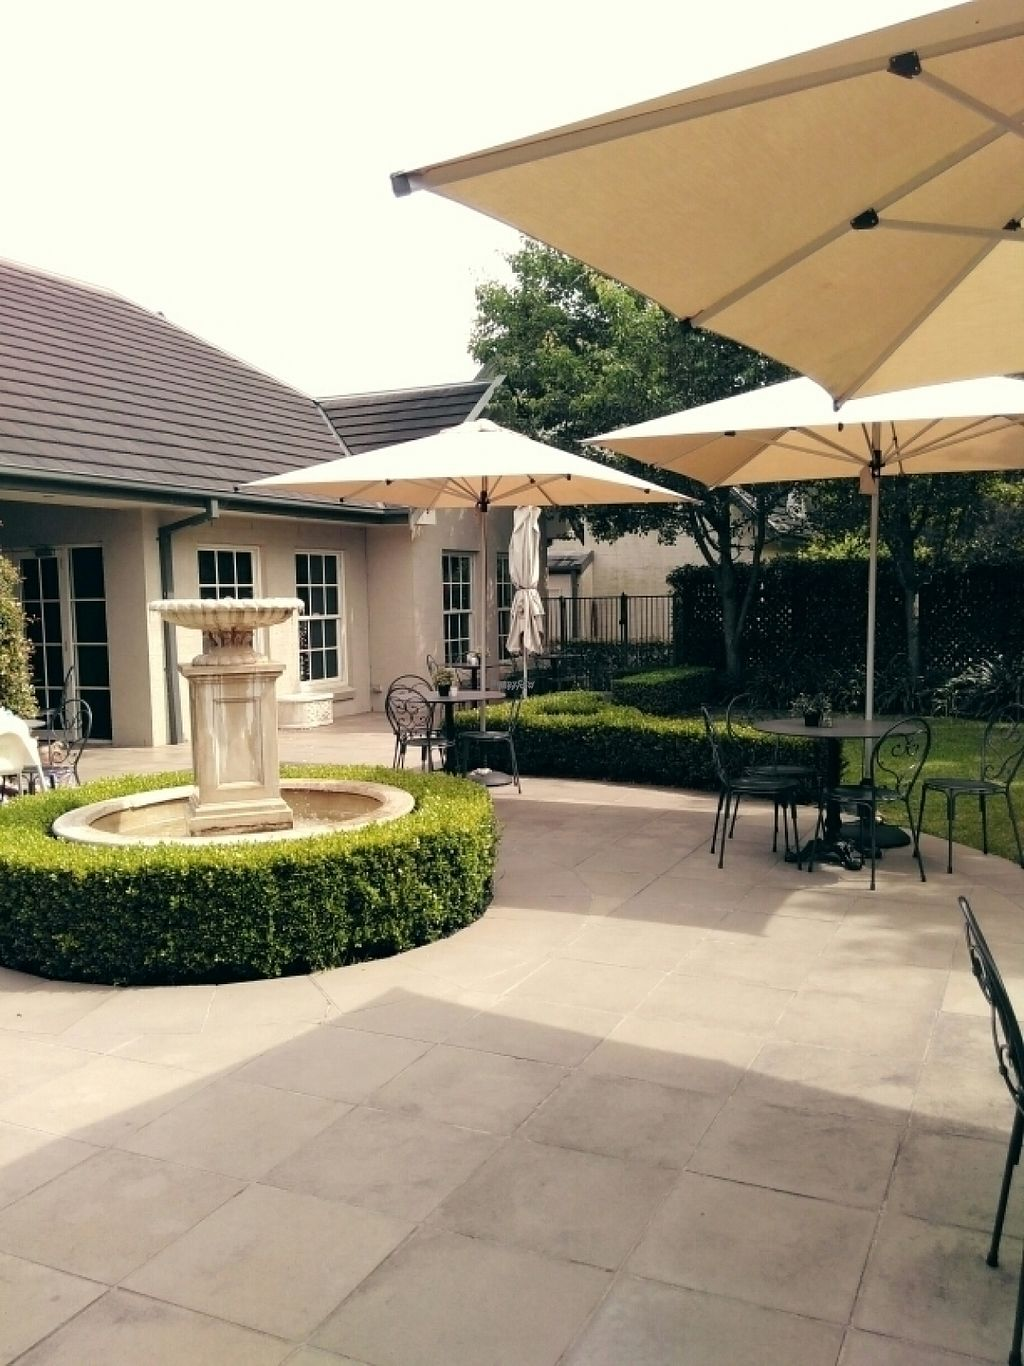 """Photo of REMOVED: Cornerstone Courtyard Cafe  by <a href=""""/members/profile/Cucuscampi"""">Cucuscampi</a> <br/>outside <br/> November 1, 2016  - <a href='/contact/abuse/image/76940/185748'>Report</a>"""